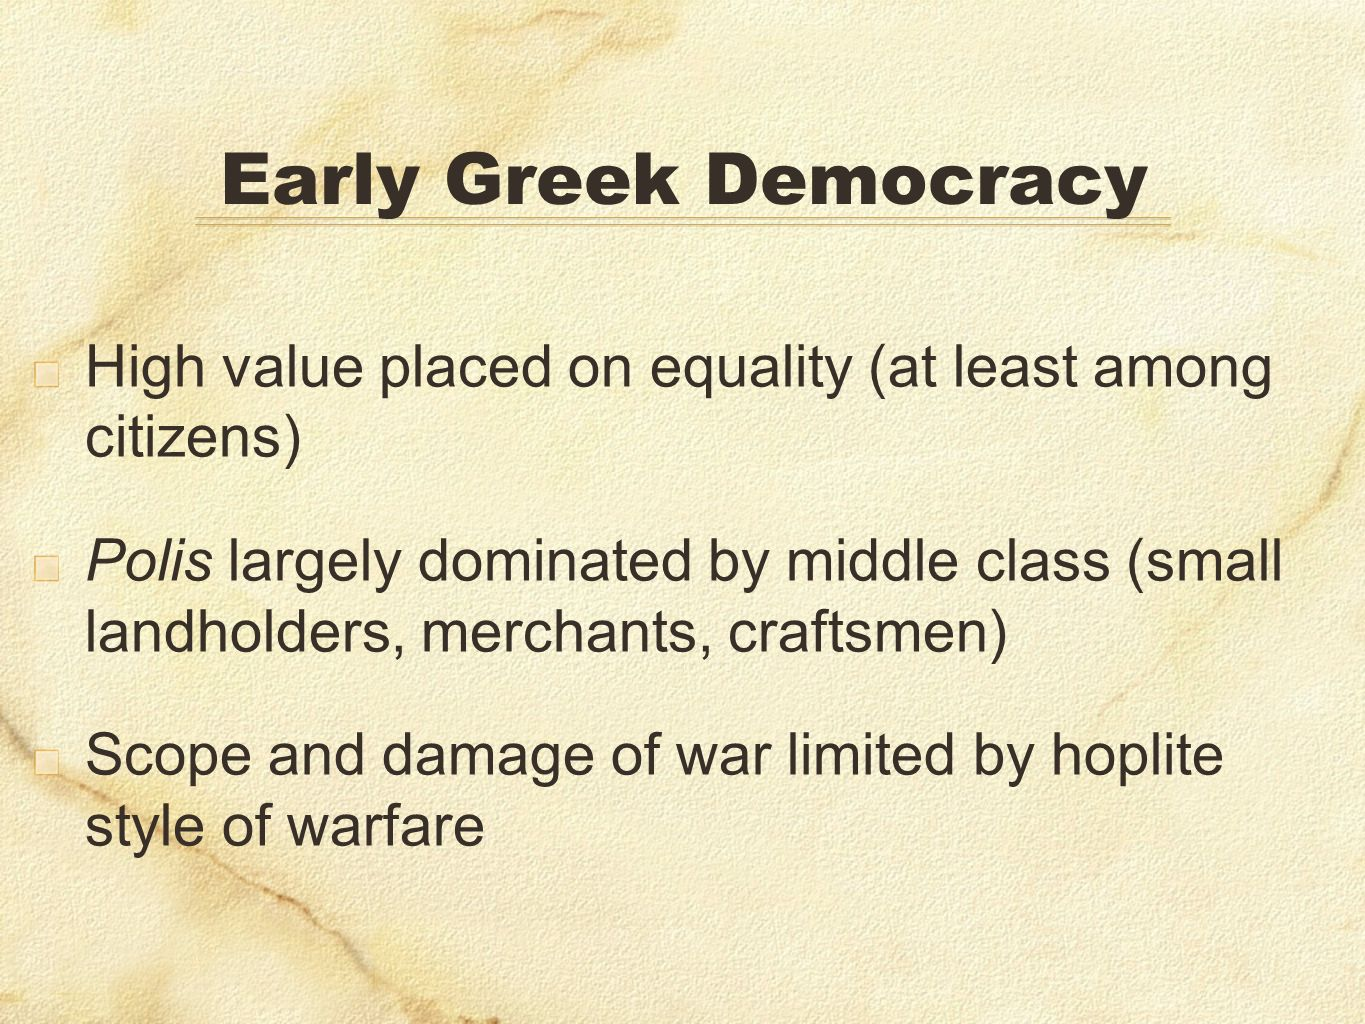 Early Greek DemocracyHigh value placed on equality (at least among citizens)